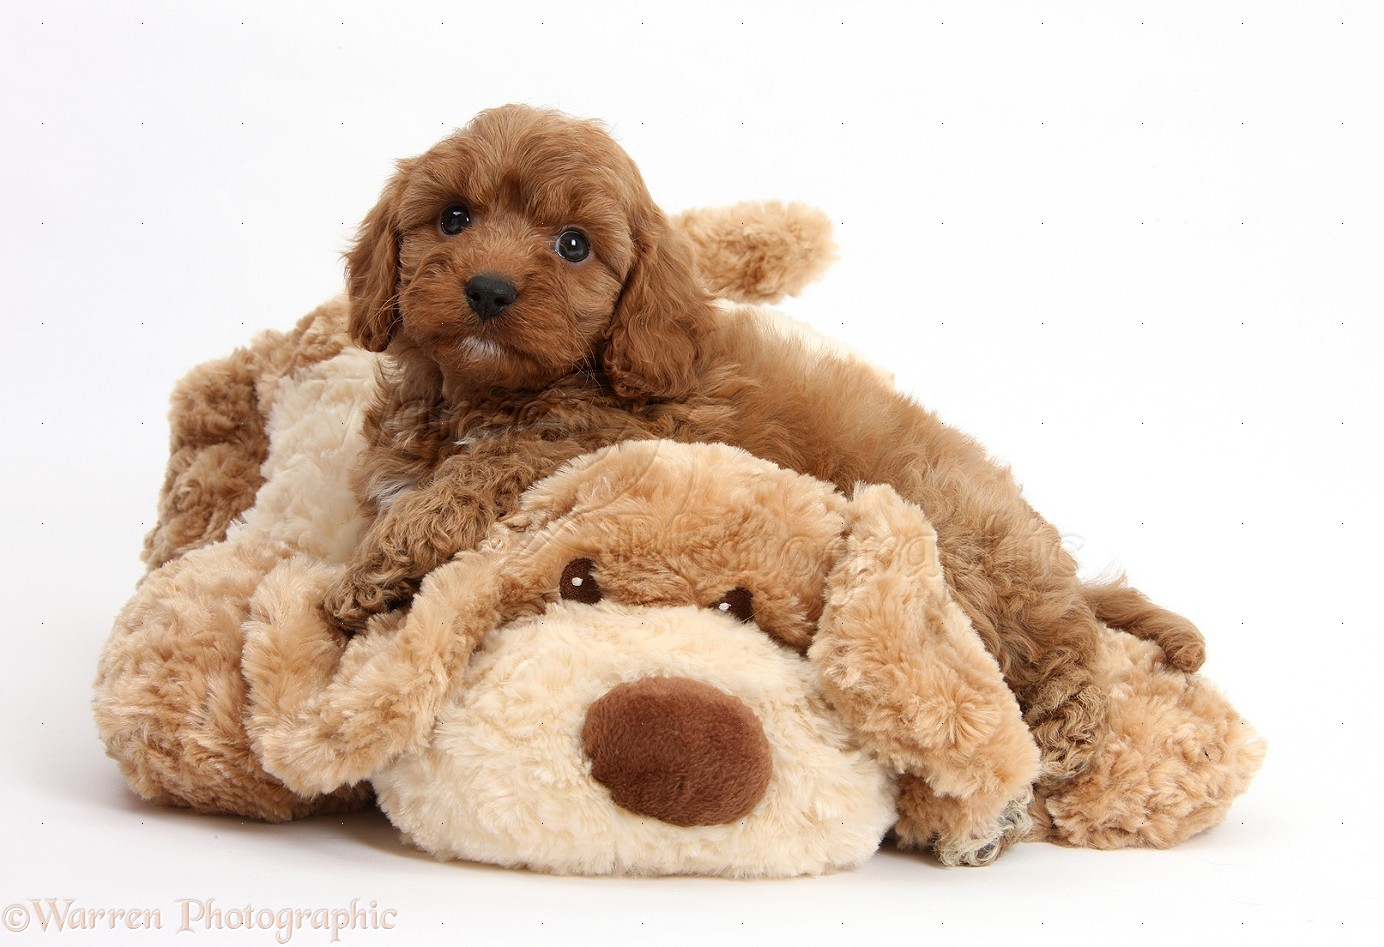 Soft Toy Dog Cavapoo Pup 6 Weeks Old And Soft Toy Dog Photo Wp22799